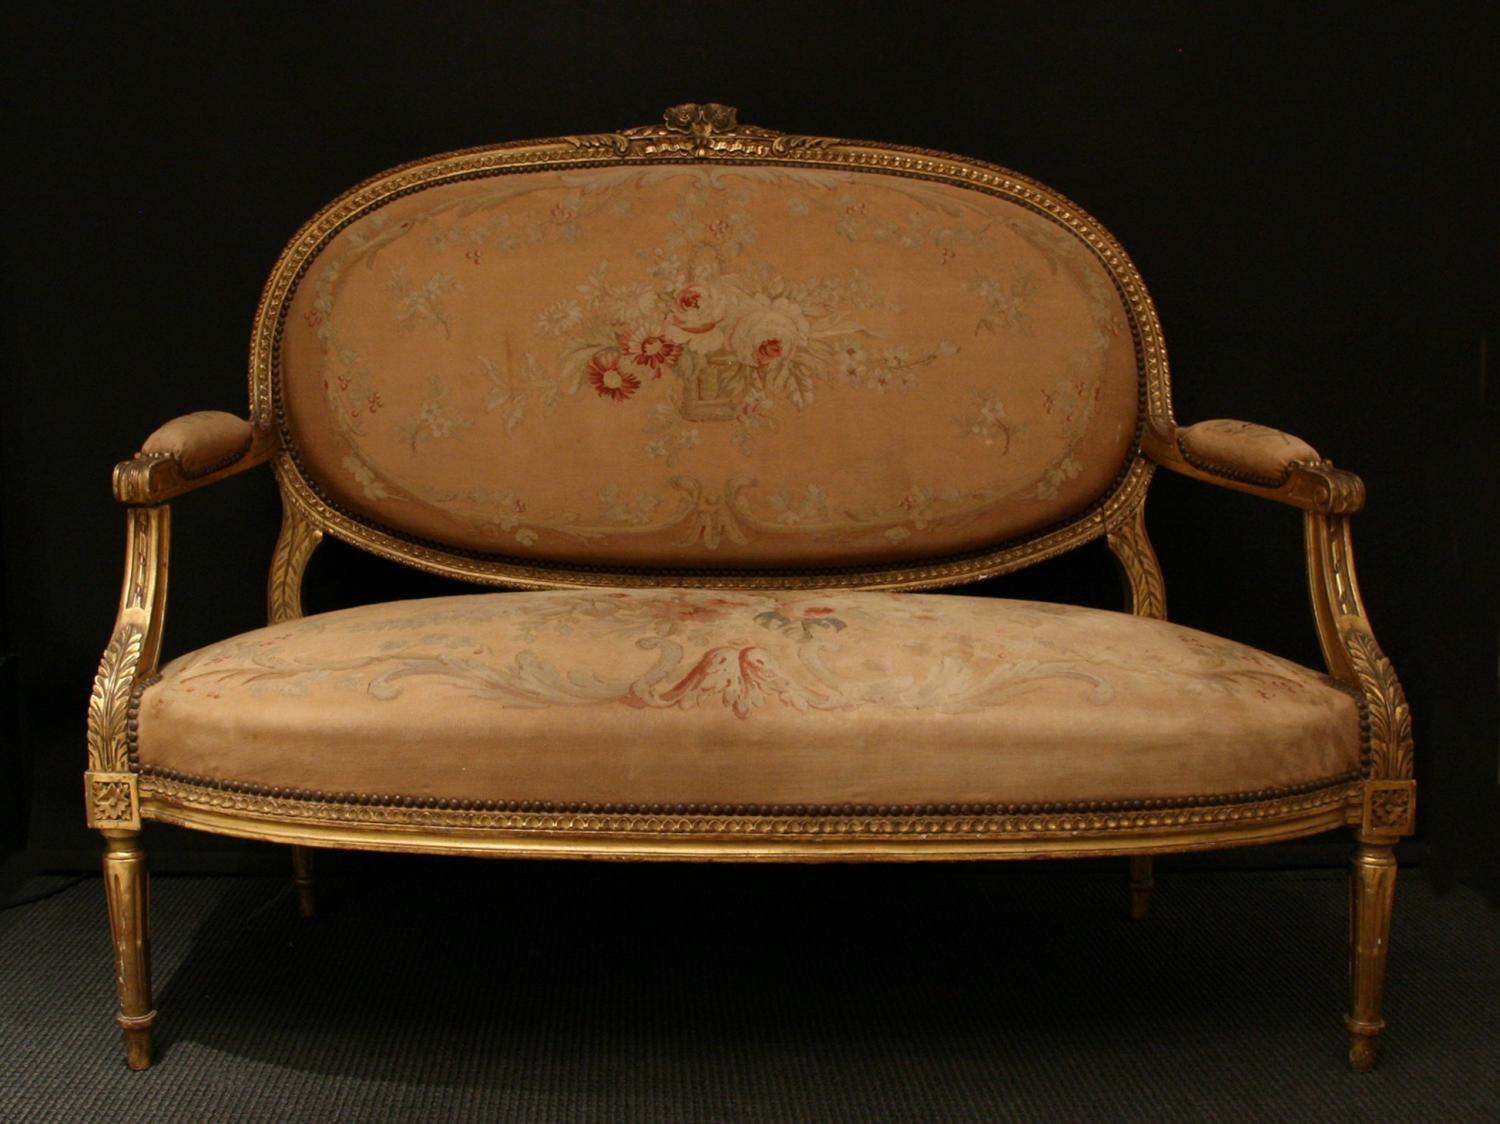 A gilt-wood Louis XVI style settee